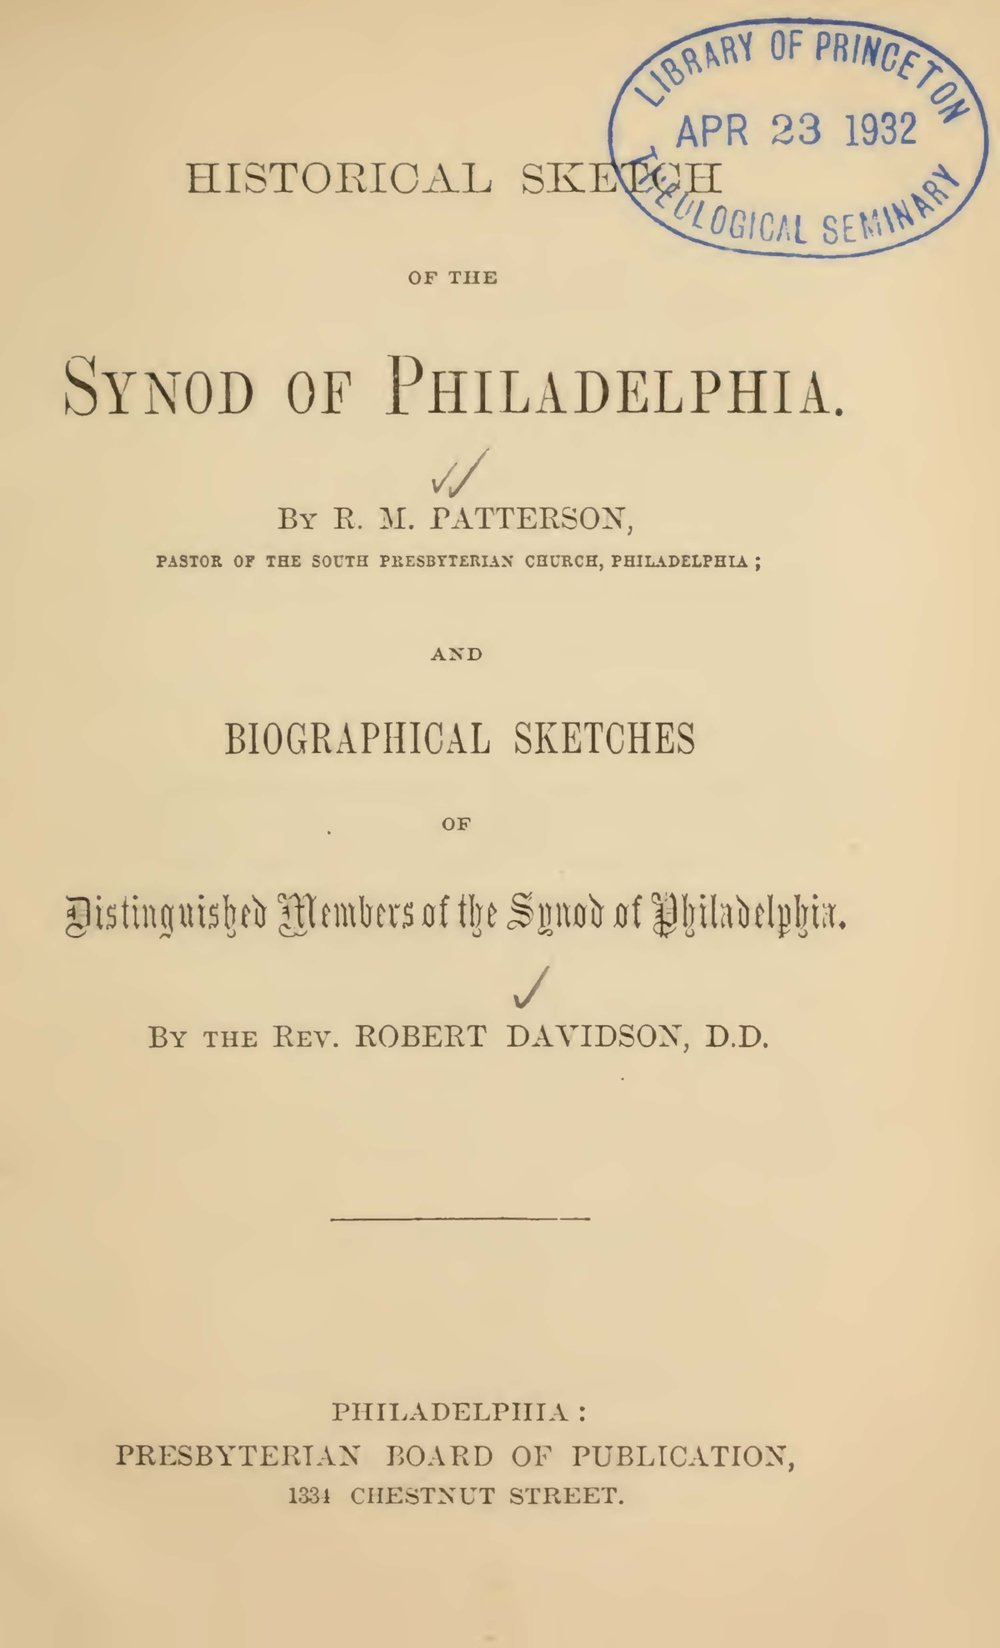 Patterson, Robert Mayne, Historical Sketch of the Synod of Philadelphia Title Page.jpg